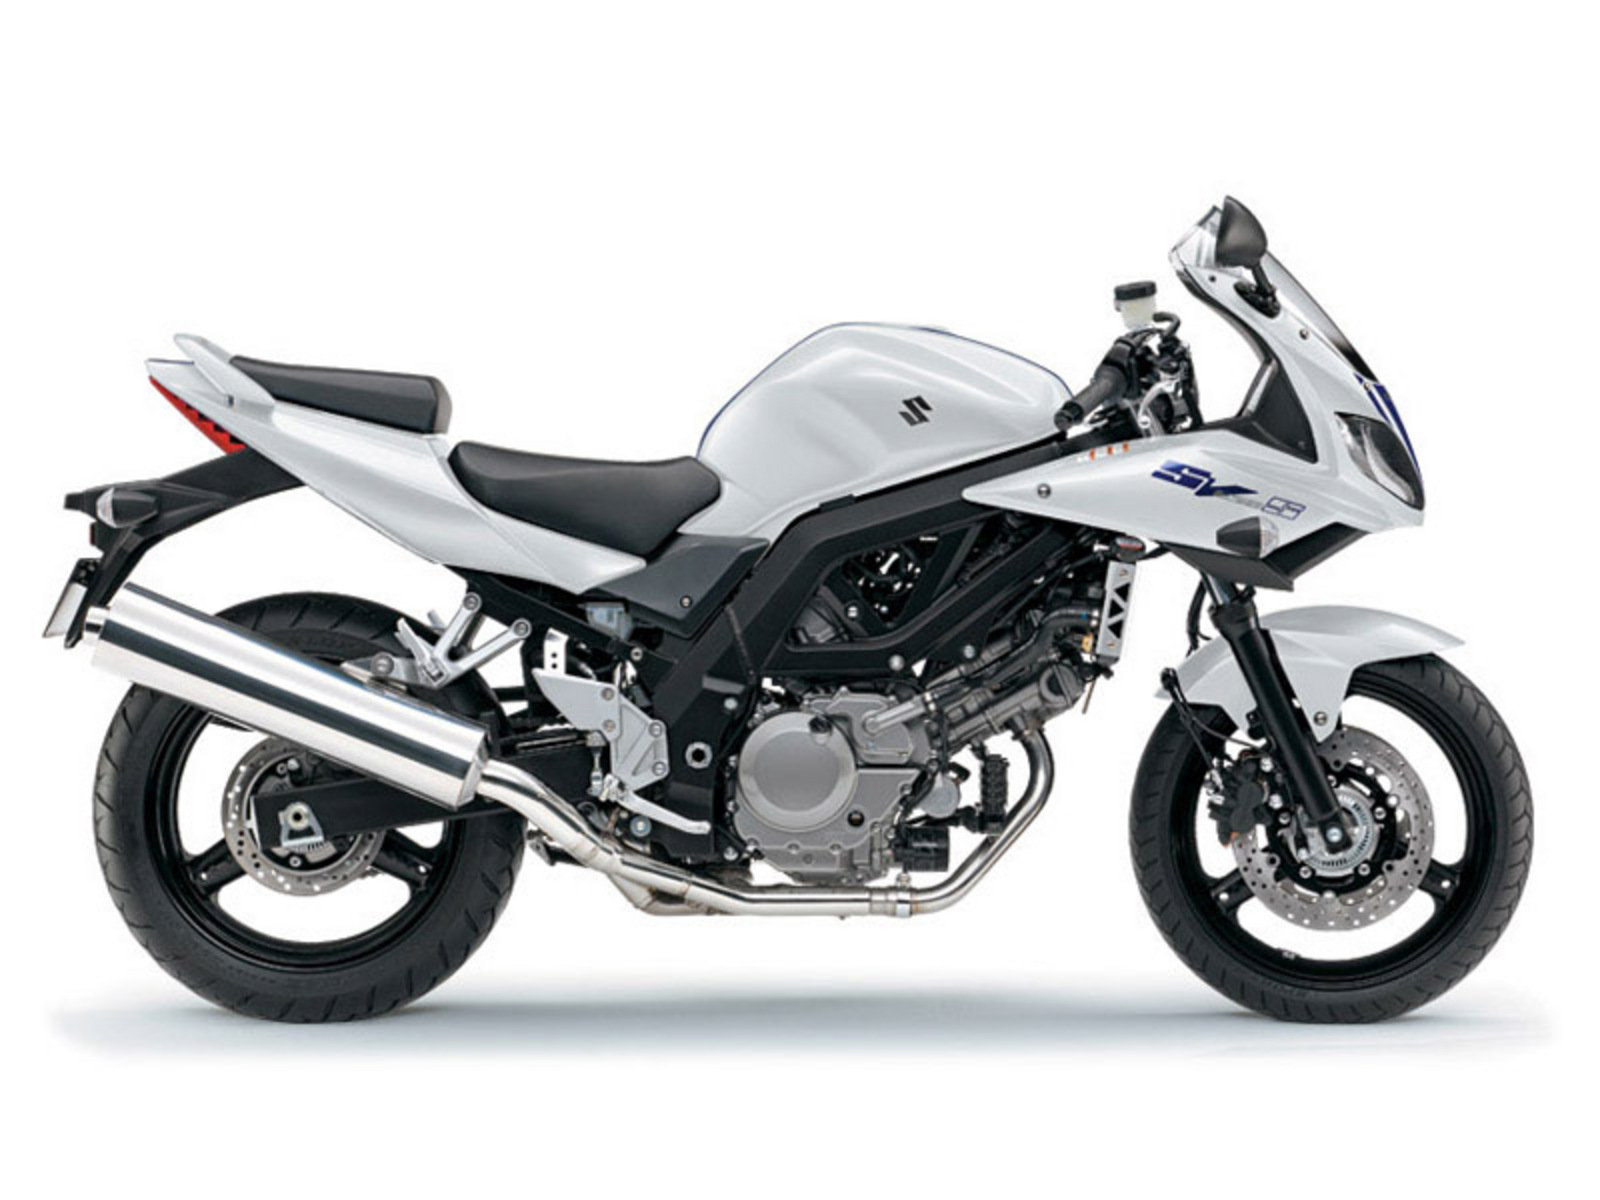 2014 suzuki sv650s review top speed. Black Bedroom Furniture Sets. Home Design Ideas